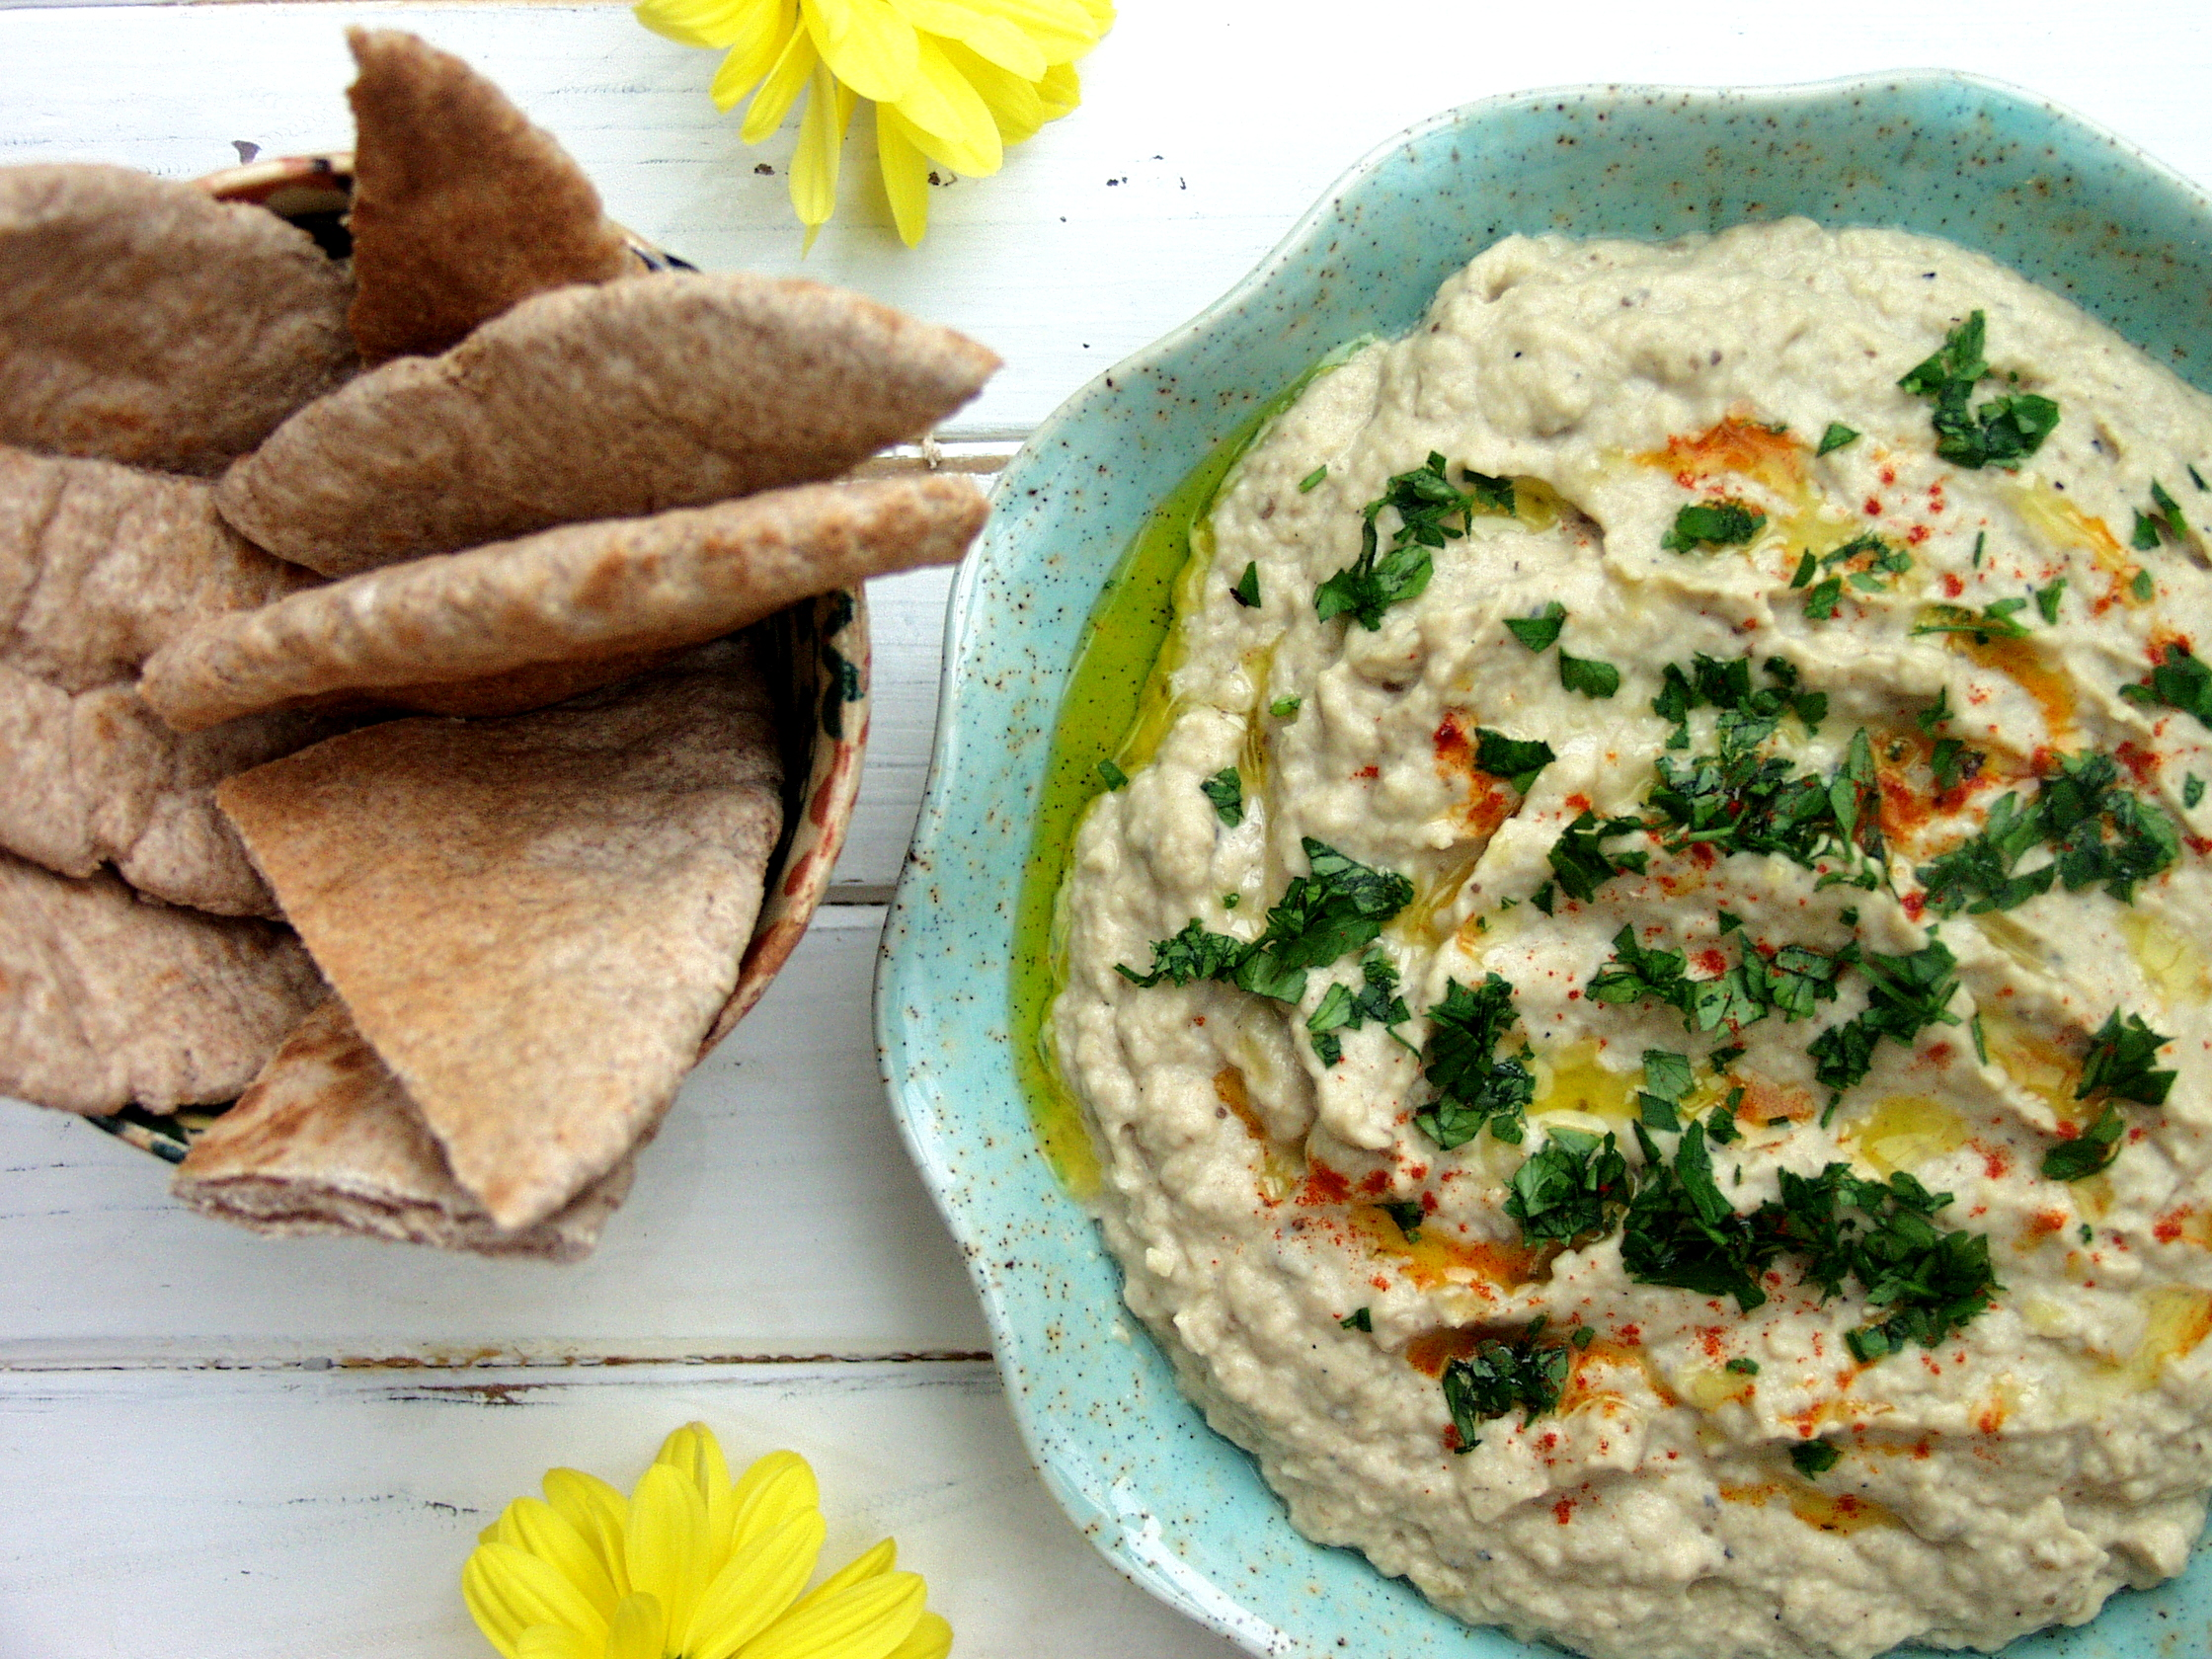 baba ganoush baba ganoush save print baba ganoush baba ganoush ...